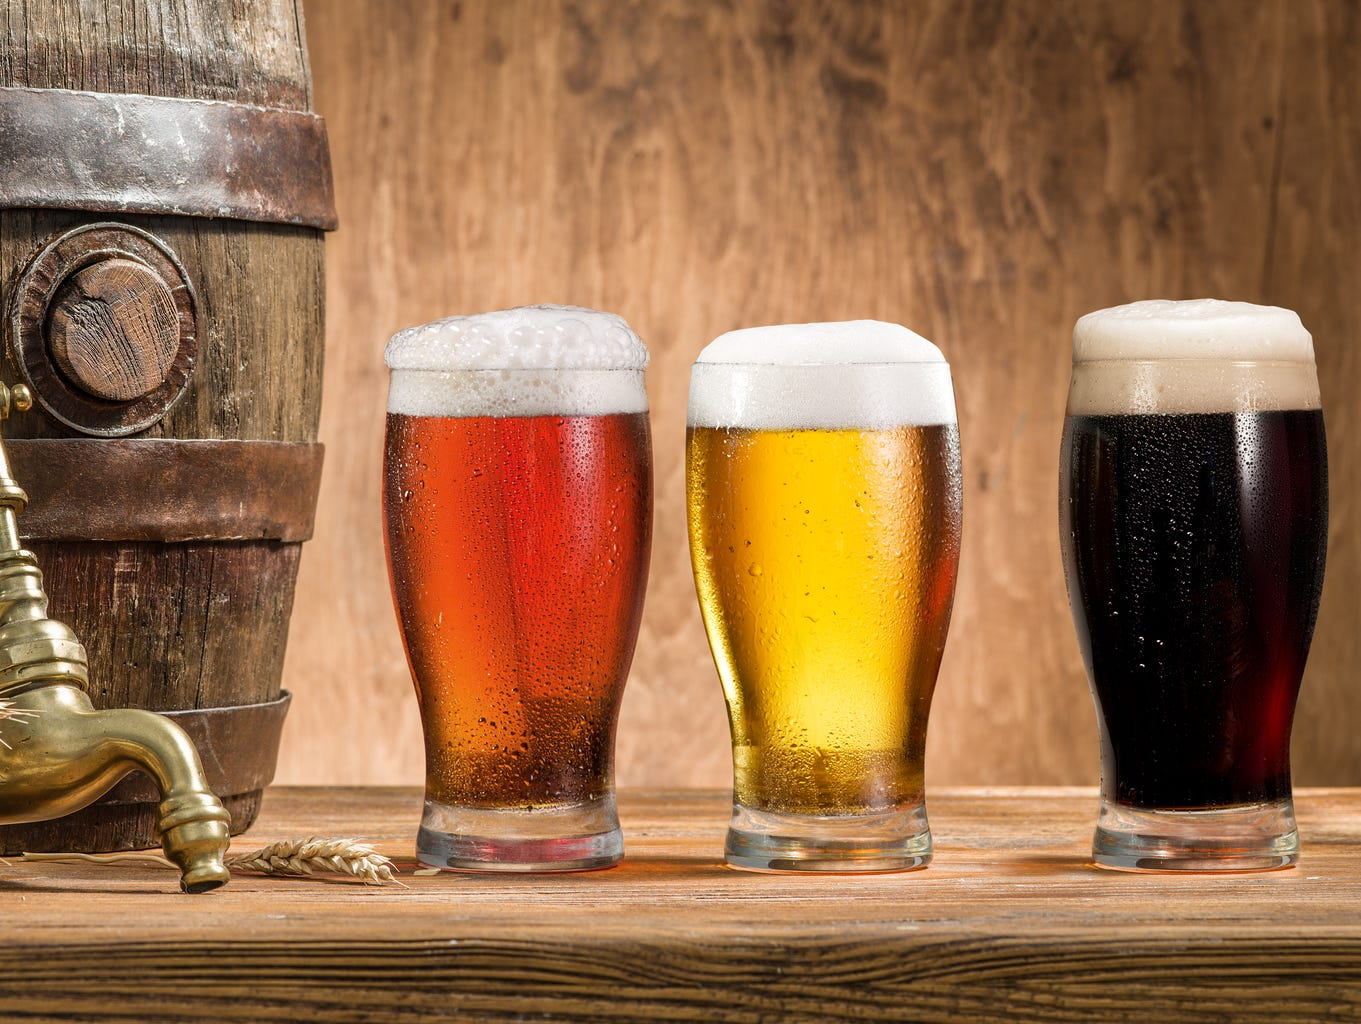 About the booming craft beer industry and beer trends for this summer.